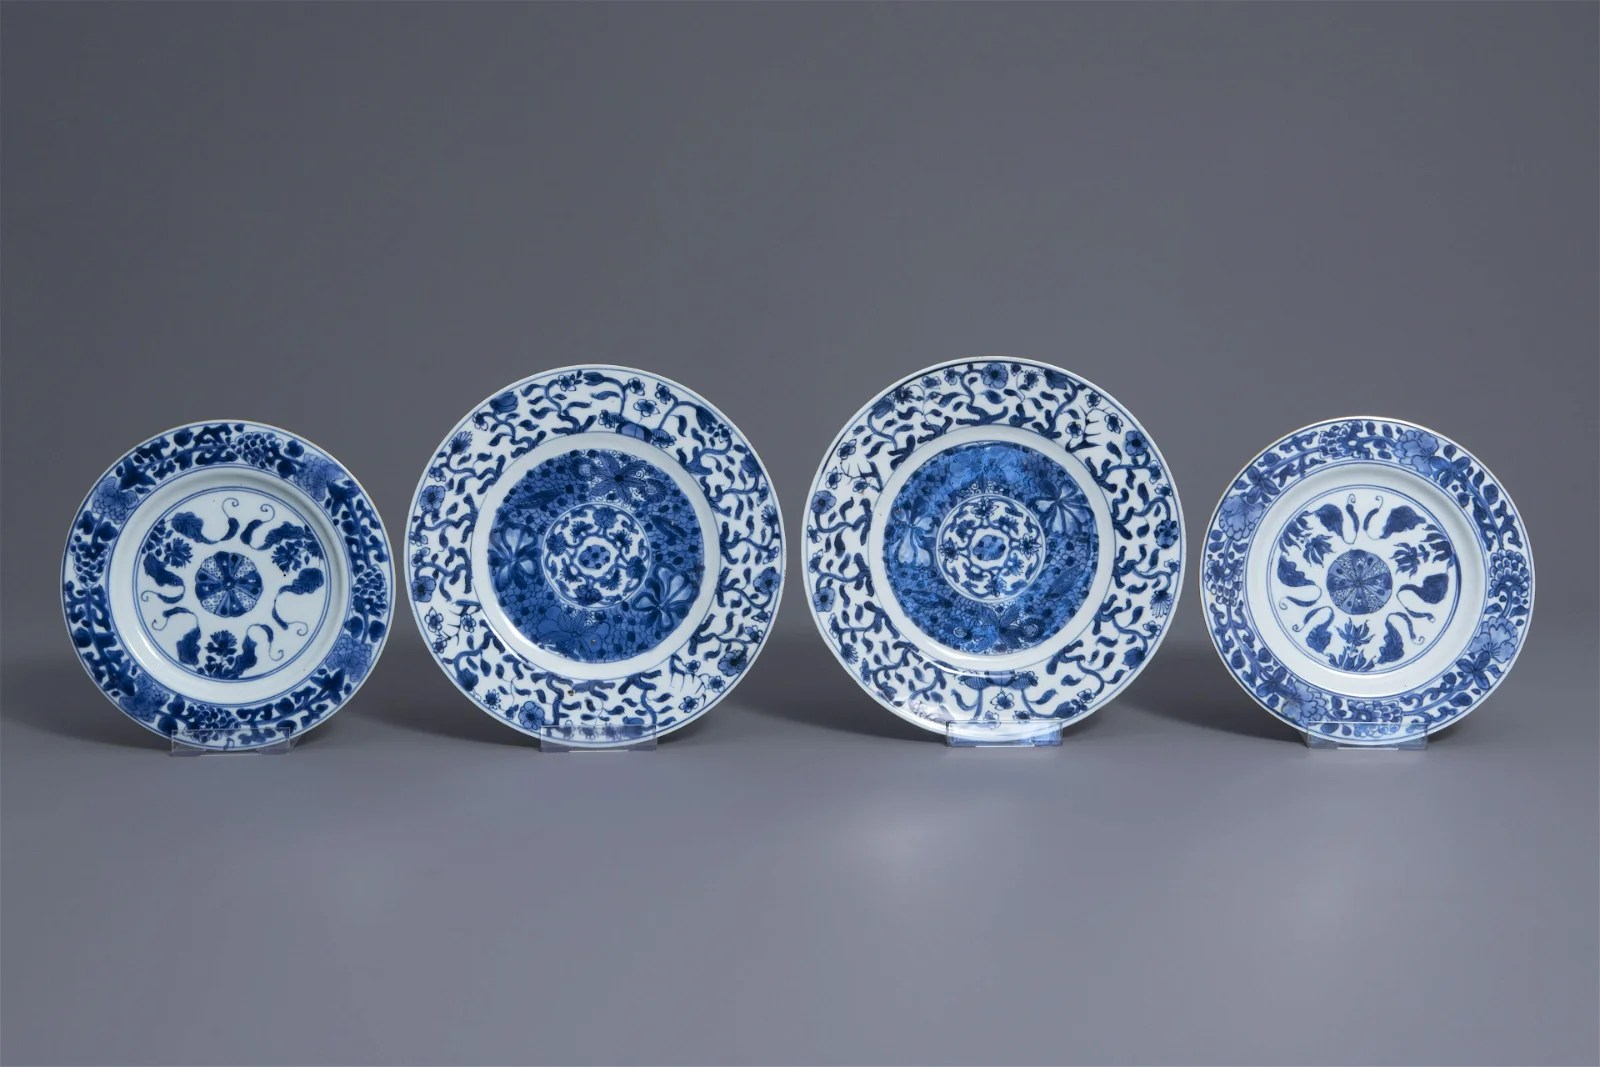 Two pairs of Chinese blue and white plates with floral